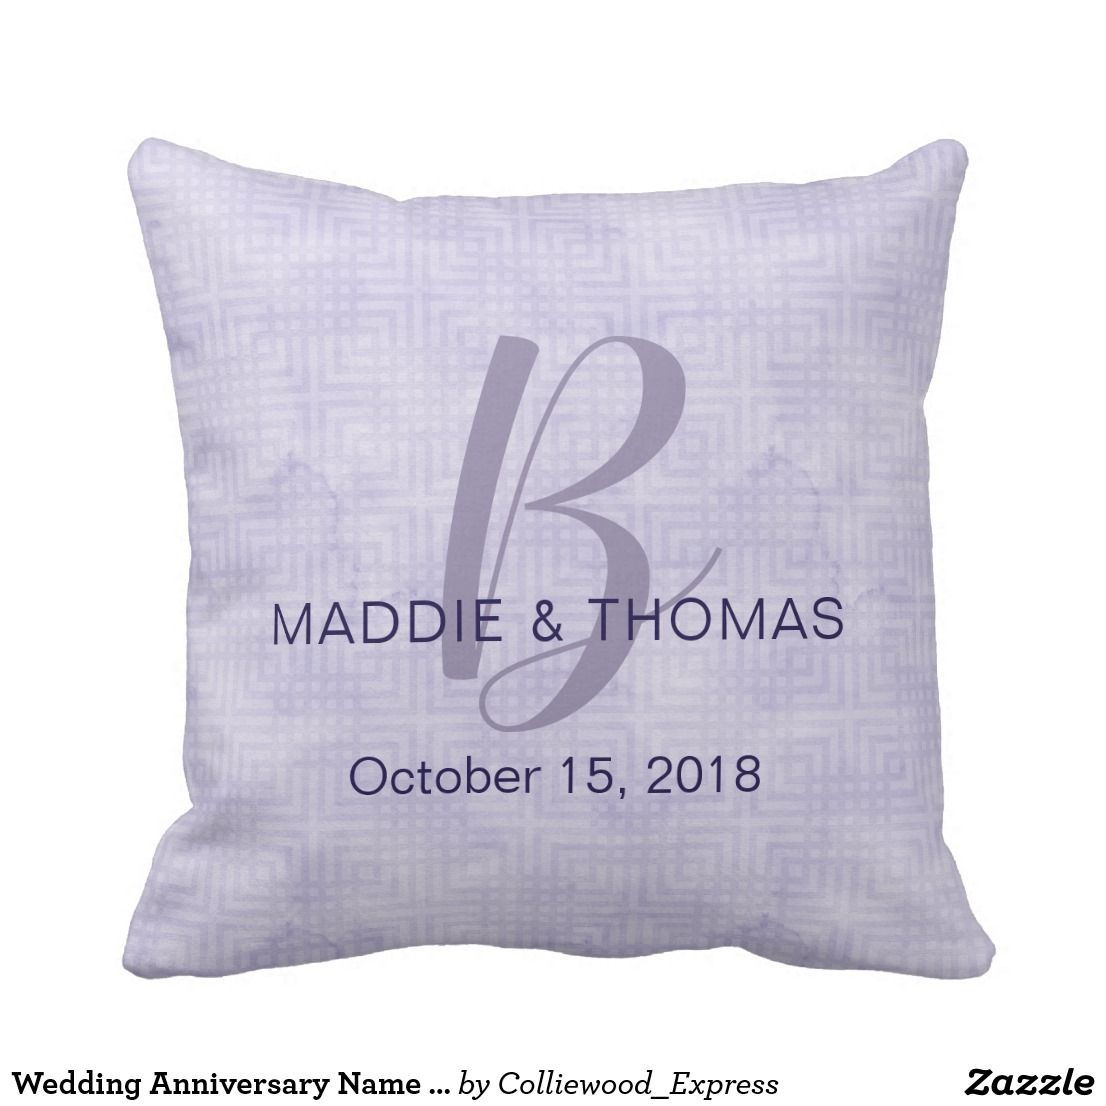 Wedding decorations names october 2018 Wedding Anniversary Name and Initial Ultraviolet Throw Pillow